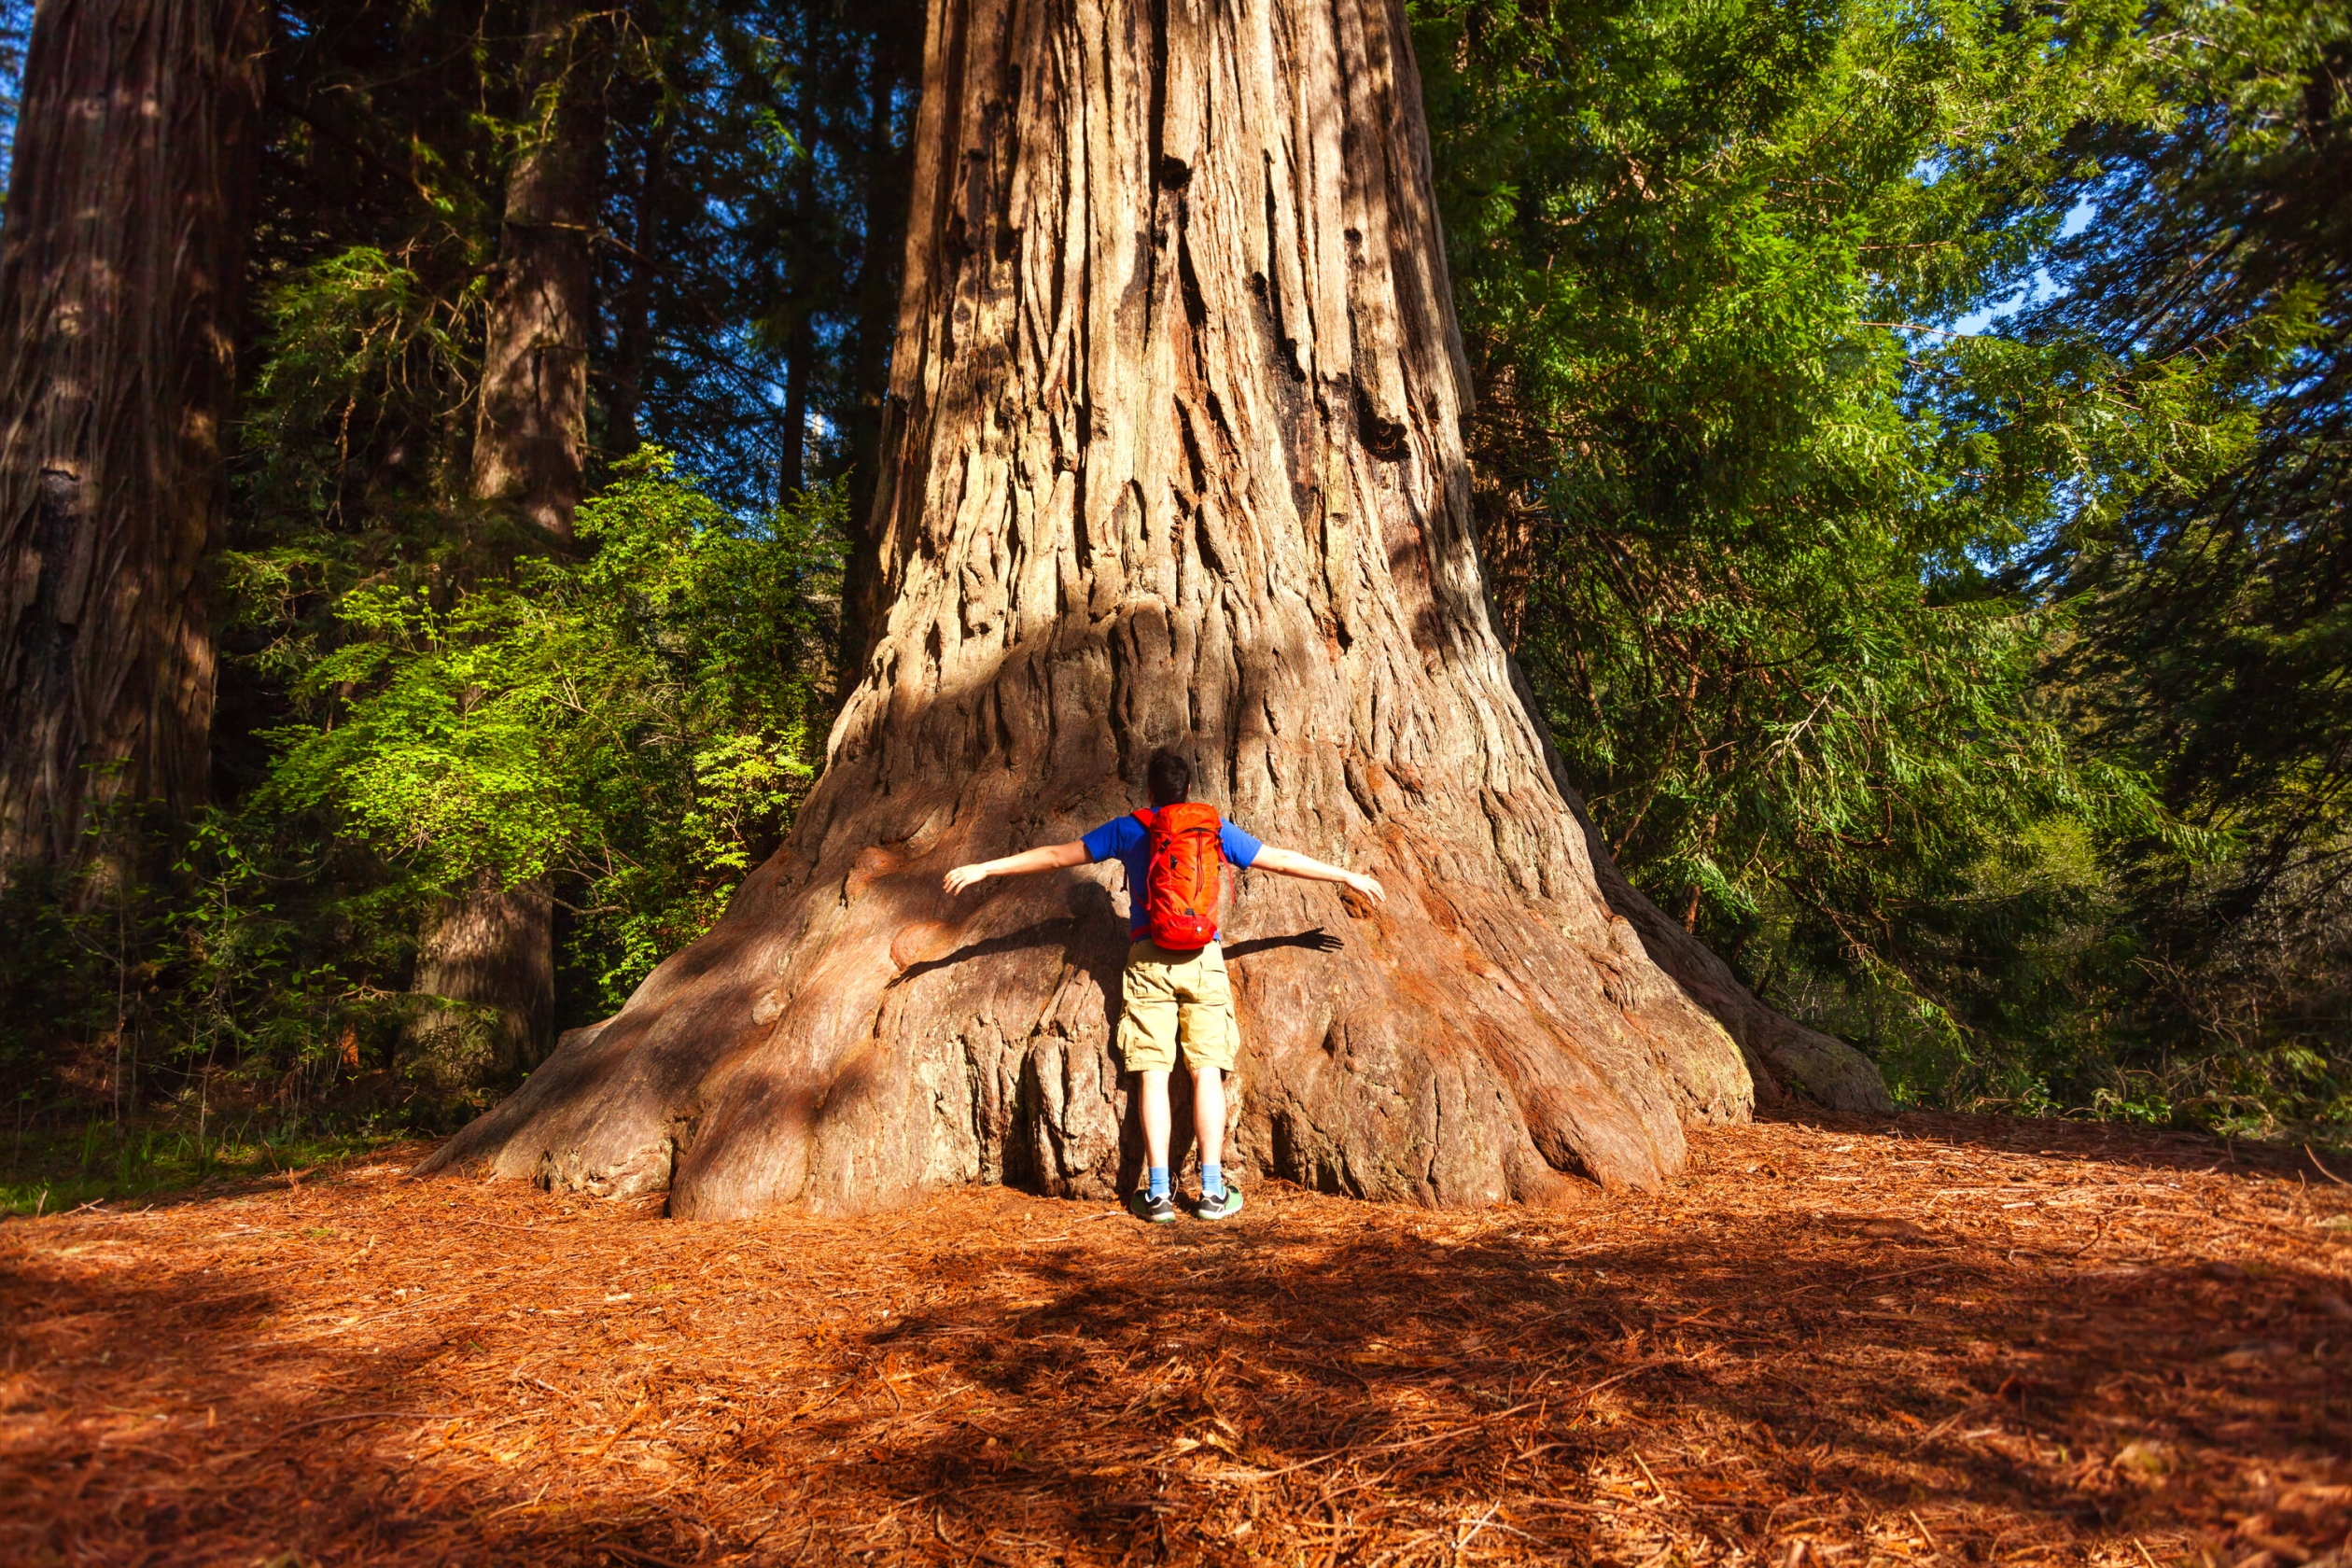 A man wearing a backpack trying to hug a giant tree trunk